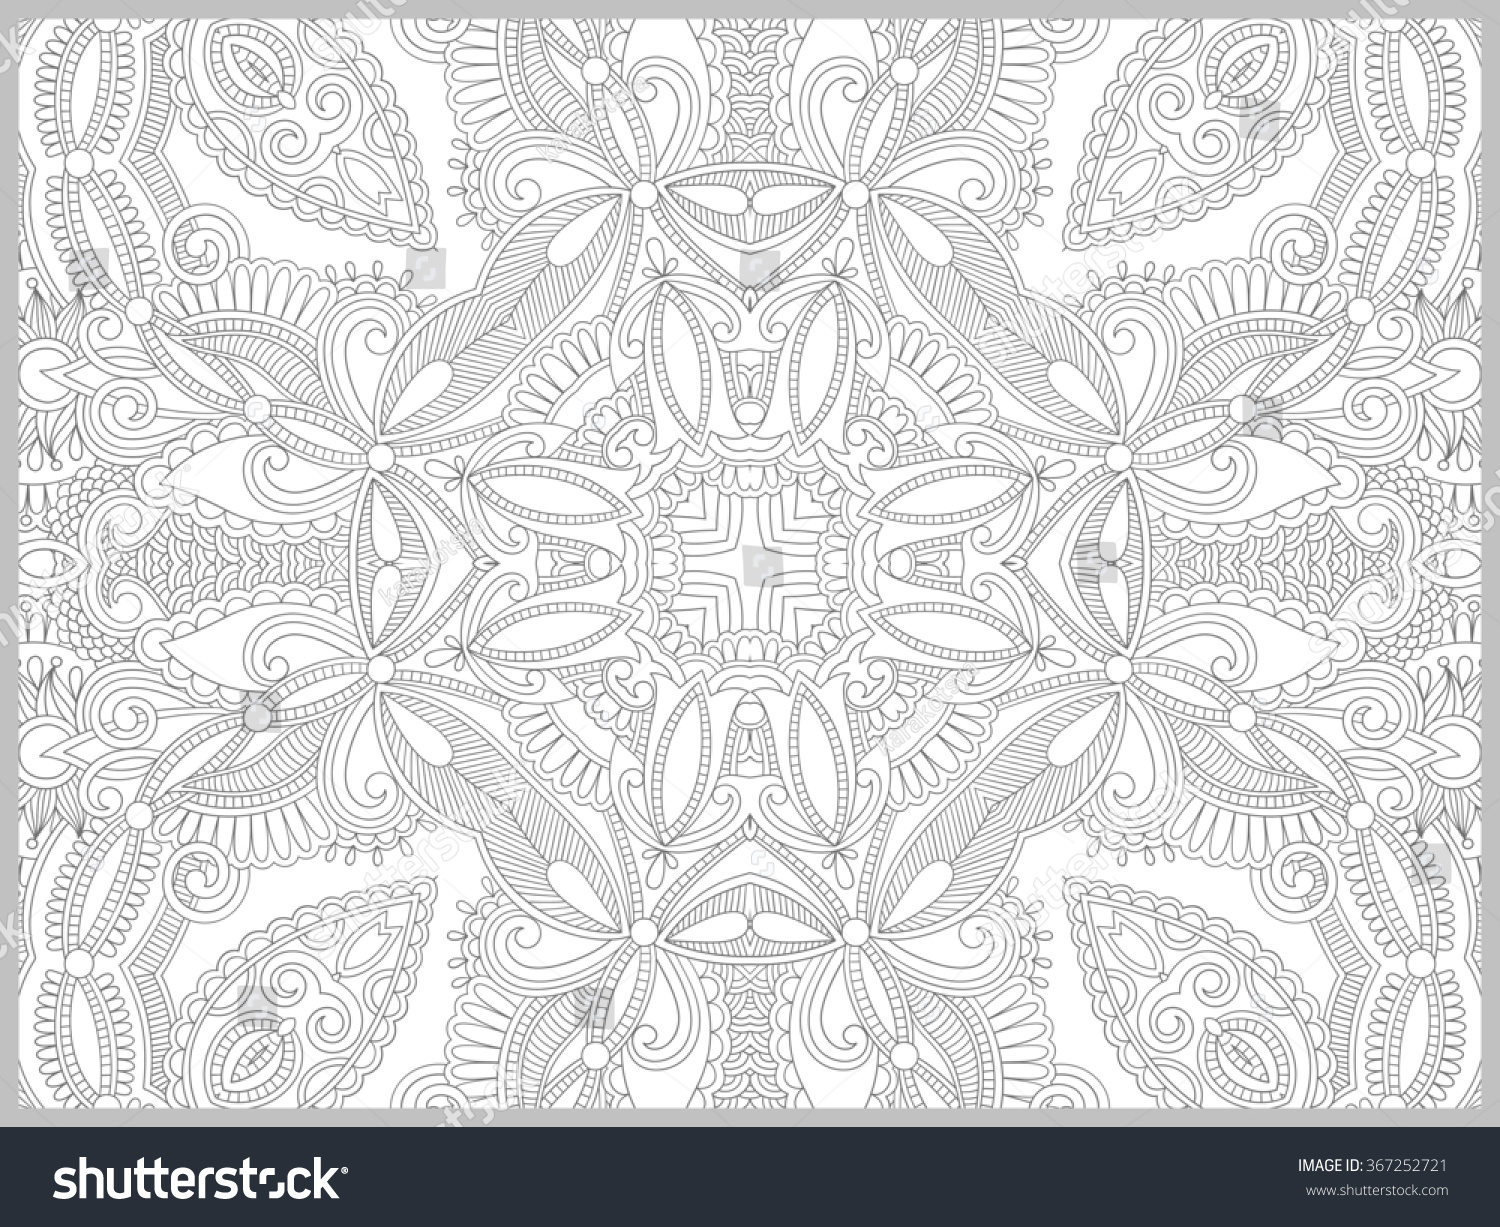 Unique coloring book page adults flower stock illustration for Unique coloring pages for adults